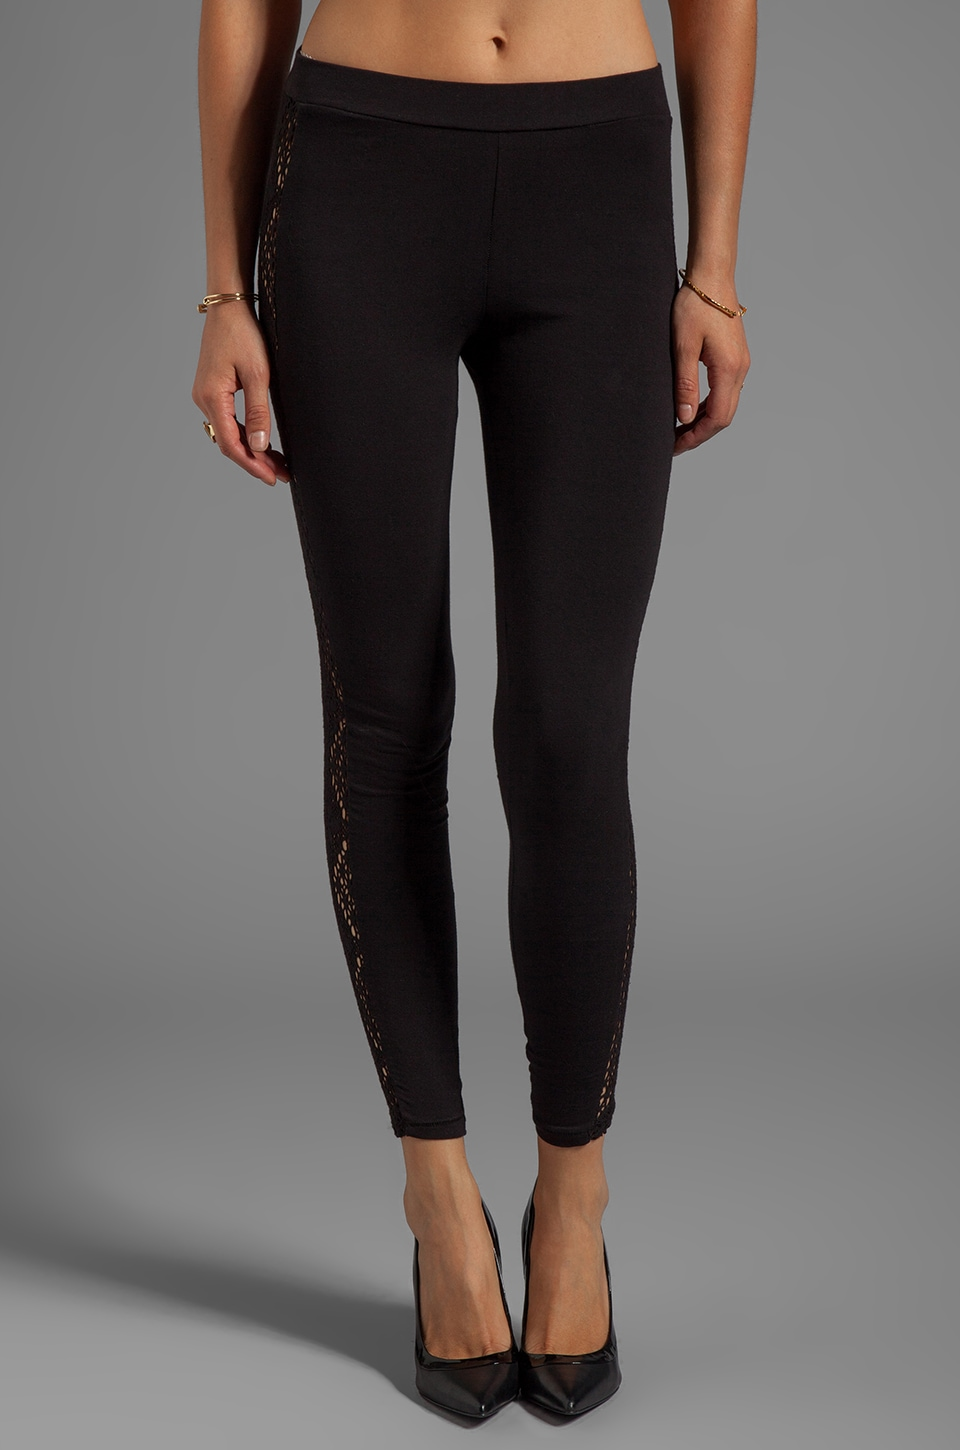 Obey Sweet Leaf Leggings in Black